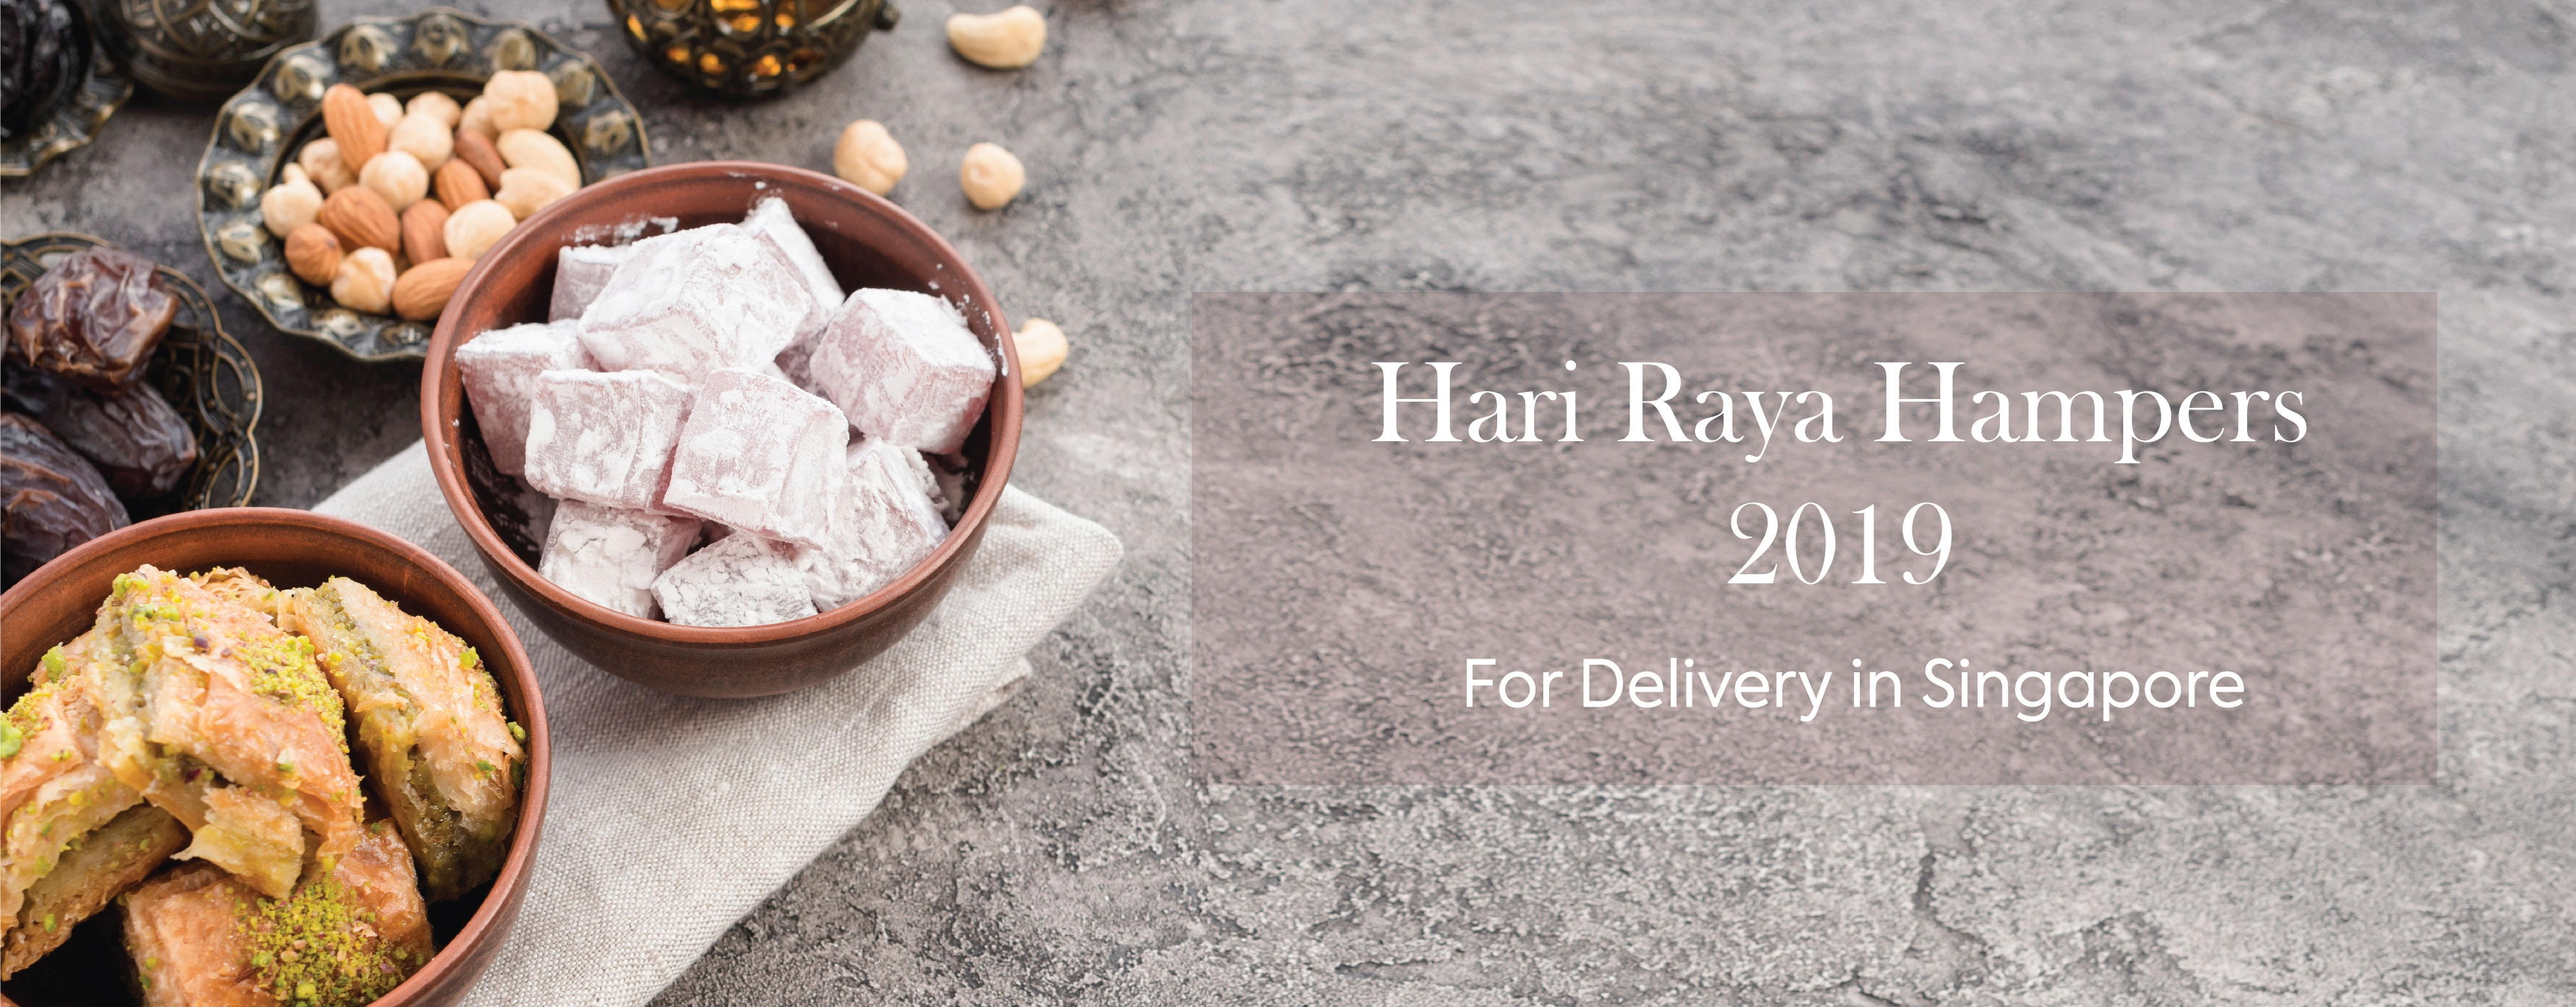 HHari Raya Hampers 2019 For Delivery in Singapore